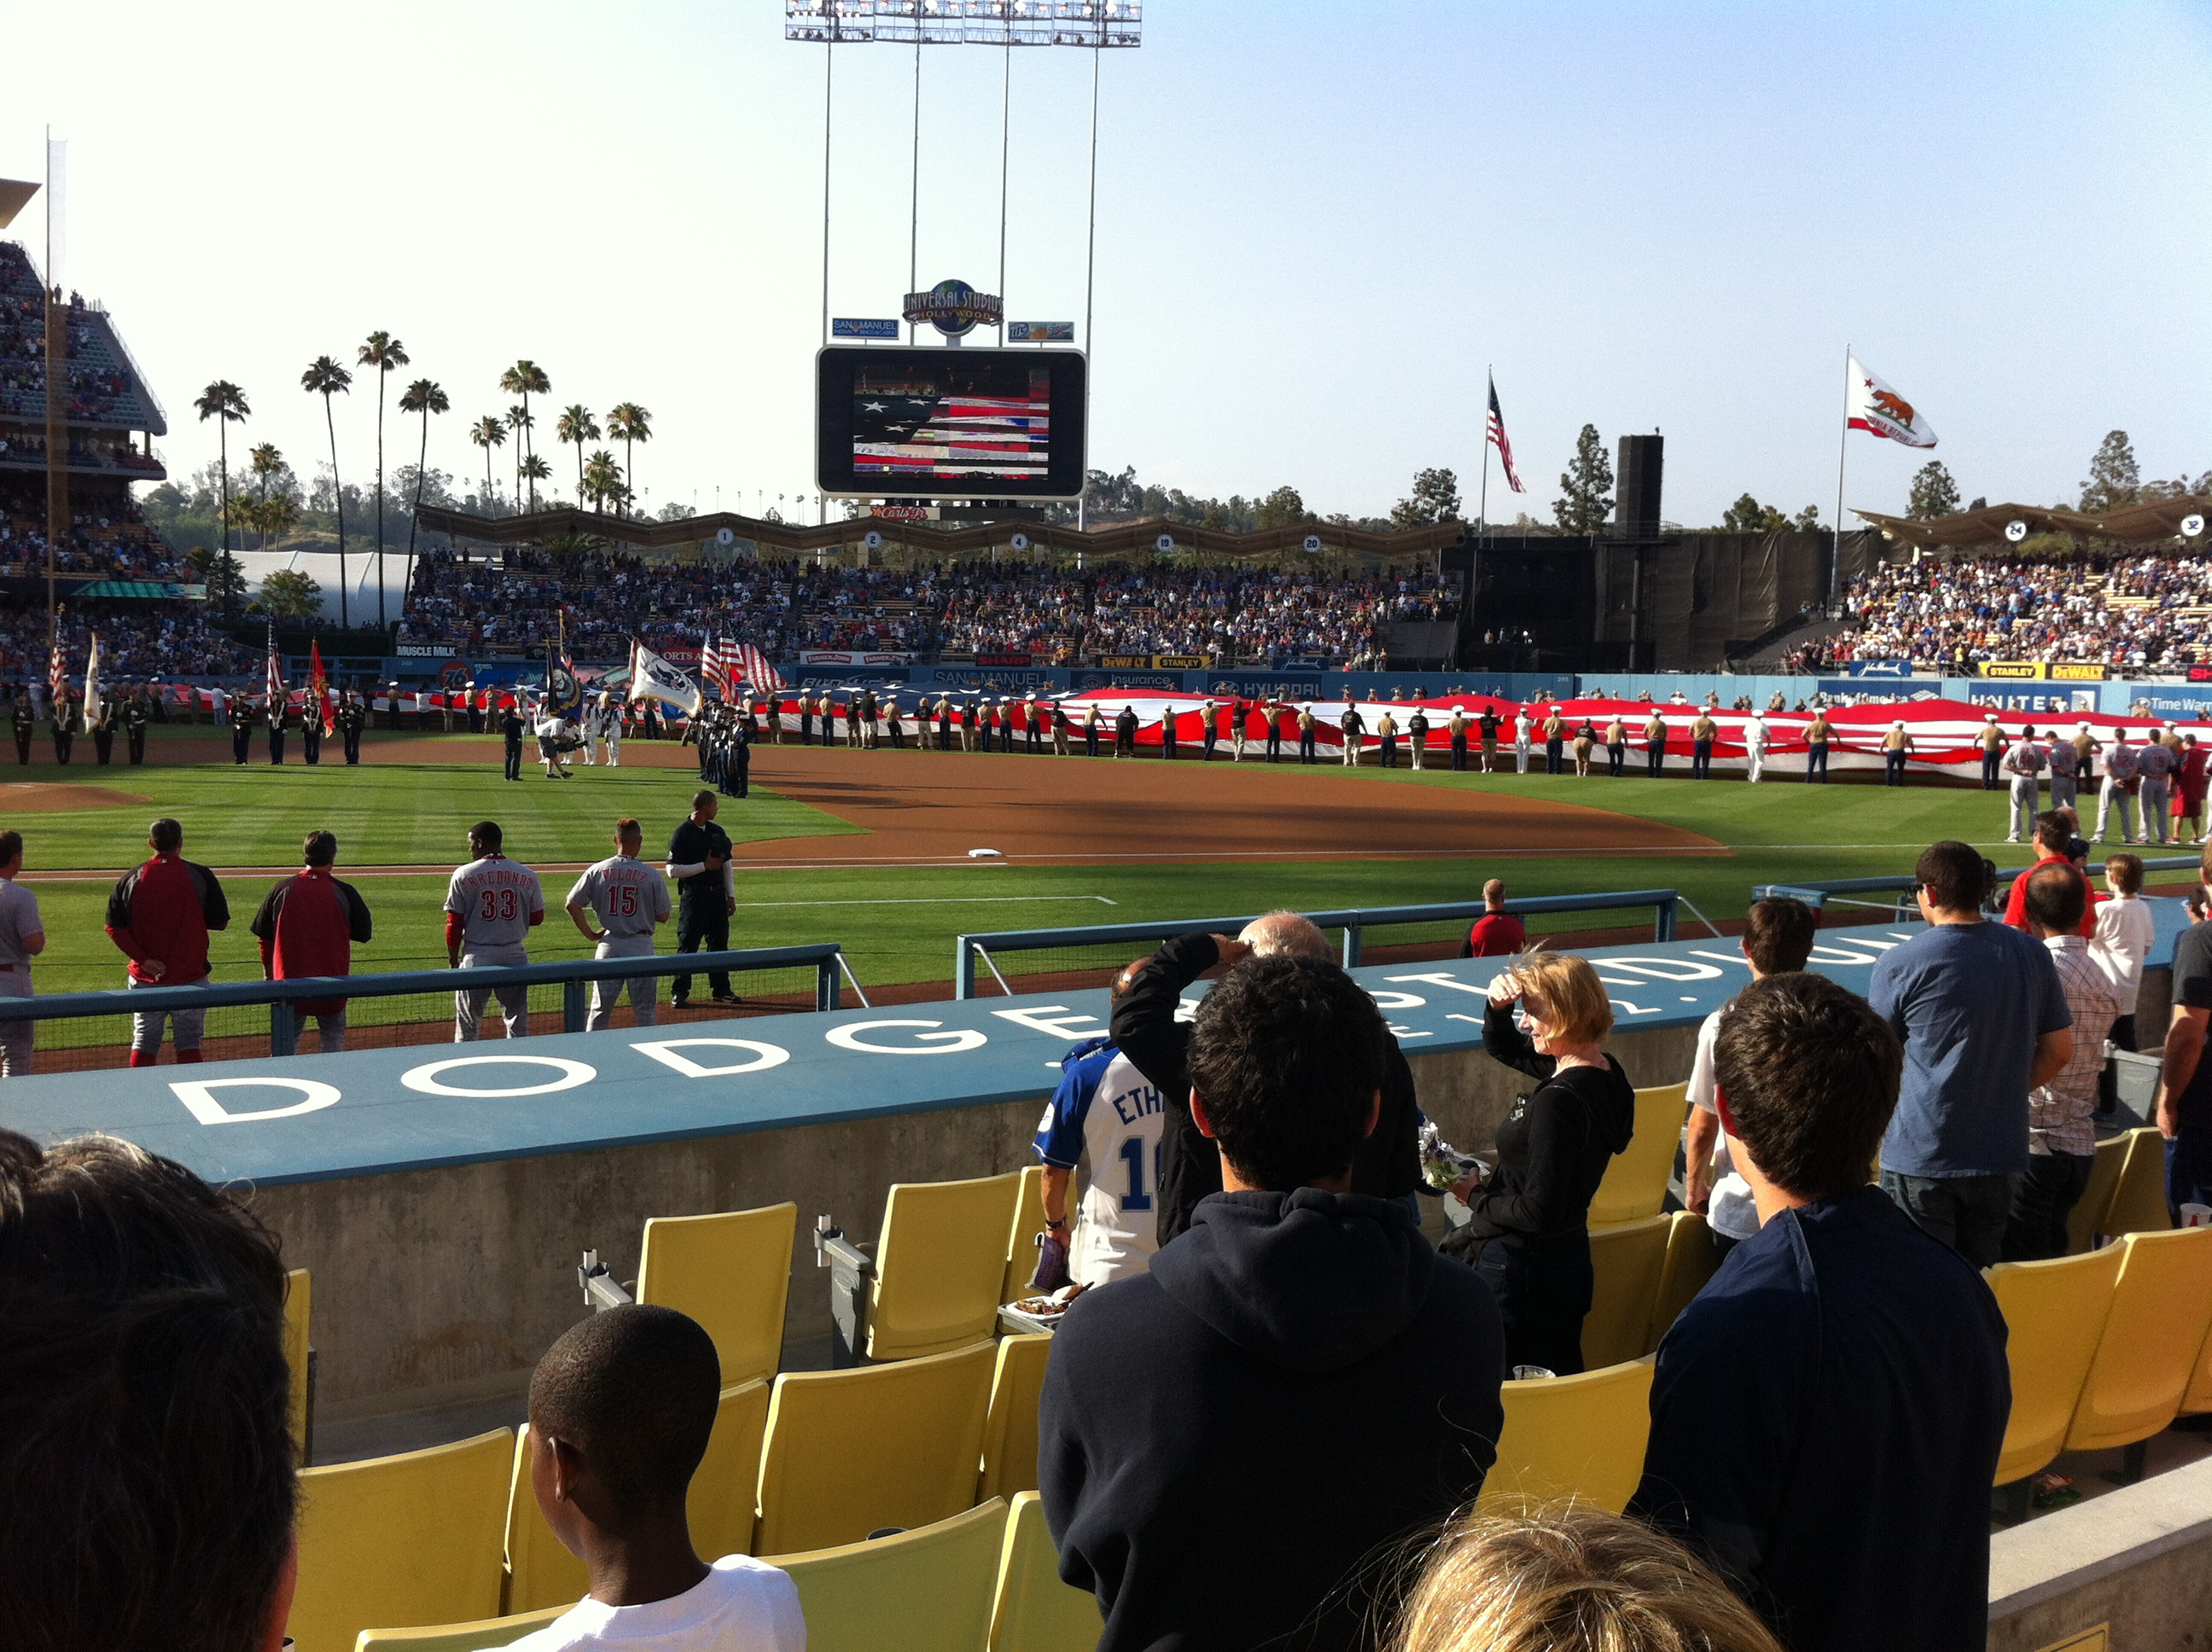 Dodger Stadium,west coast baseball tours,baseball tours